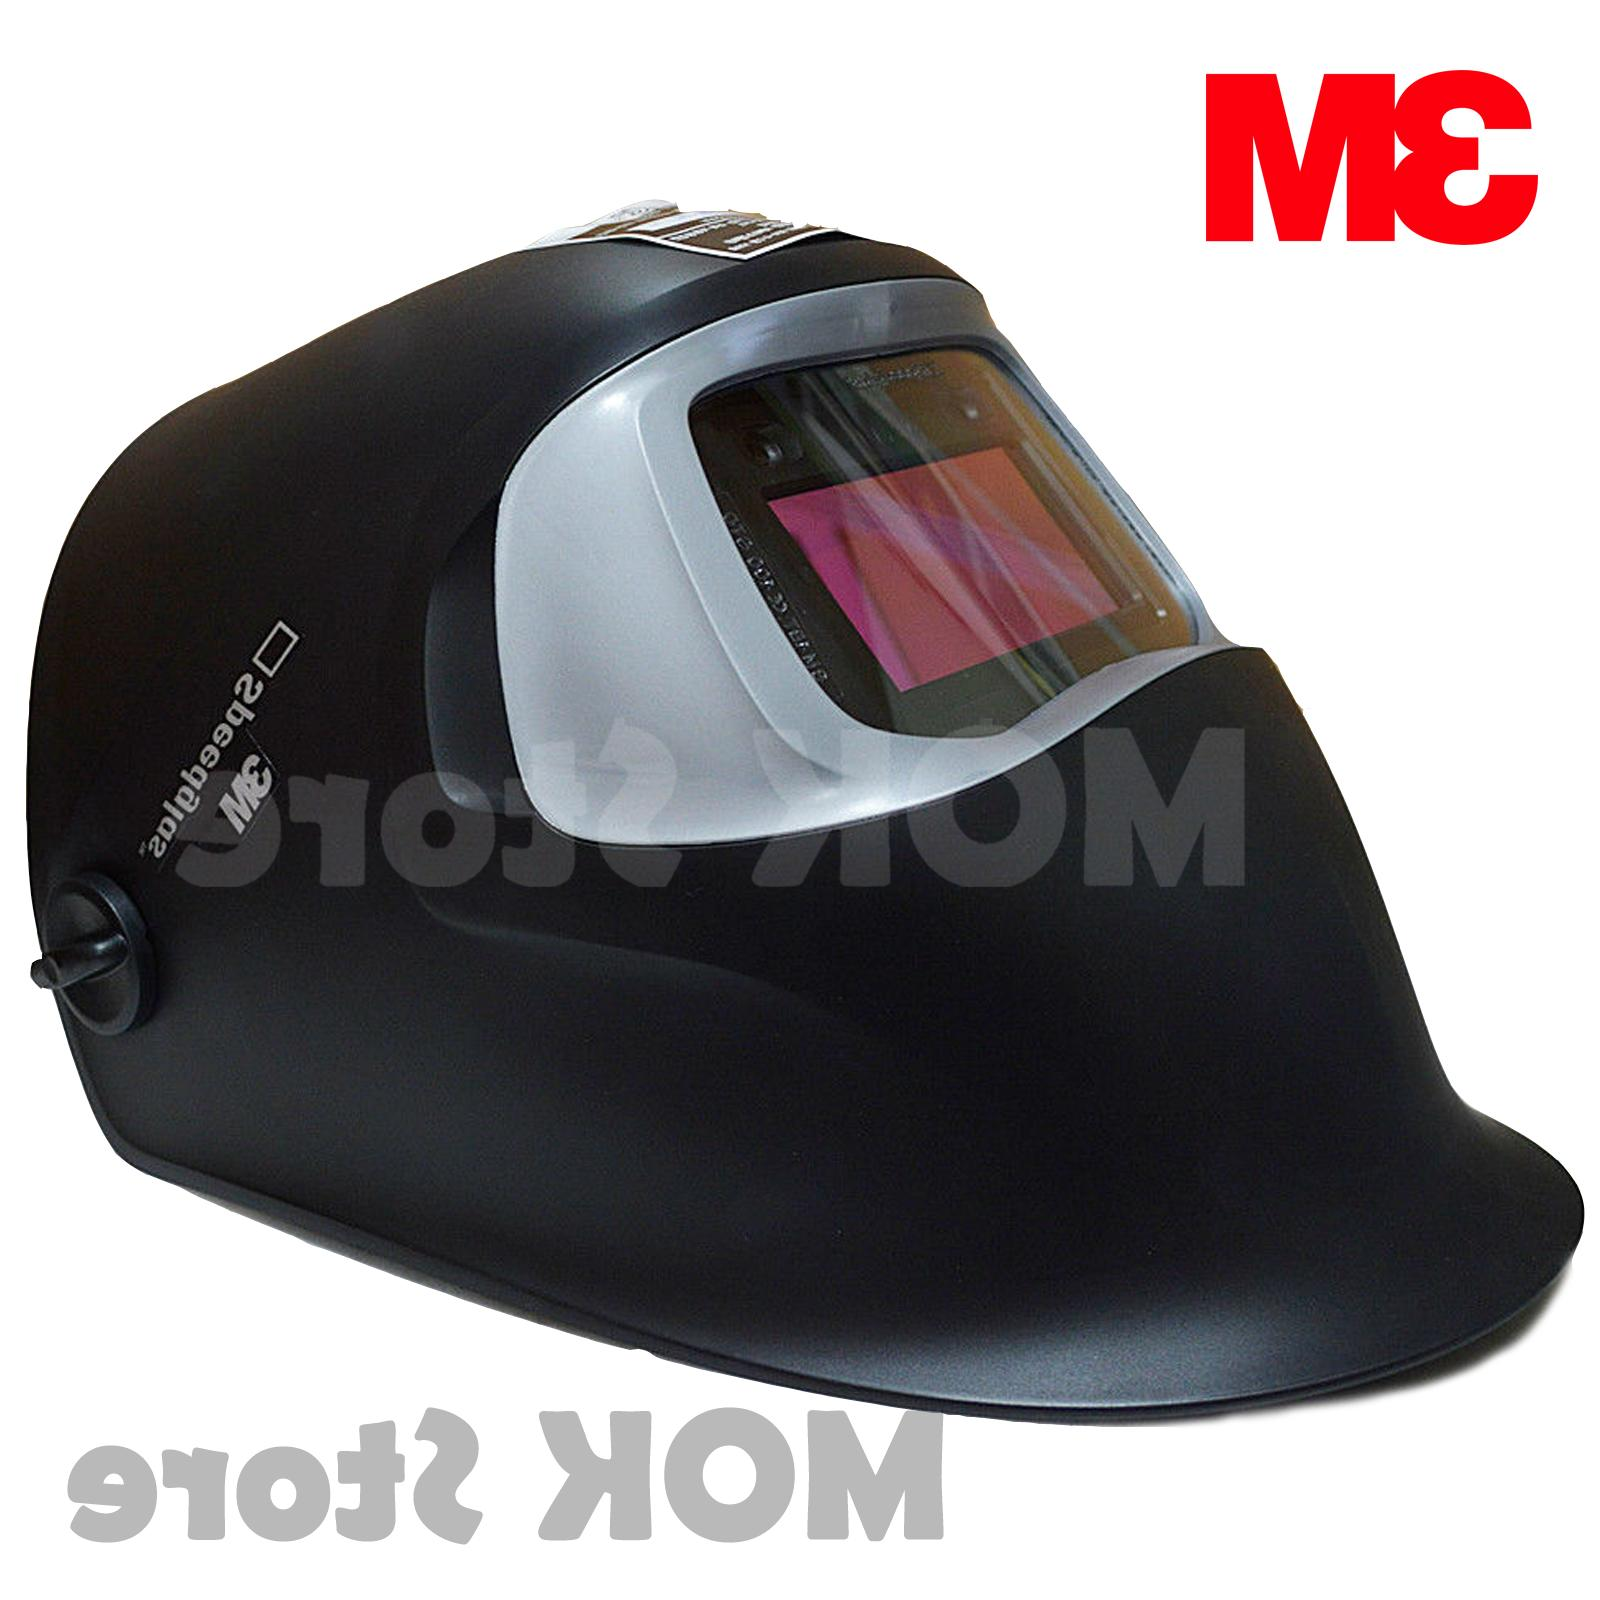 3M Helmet 100 Welding with